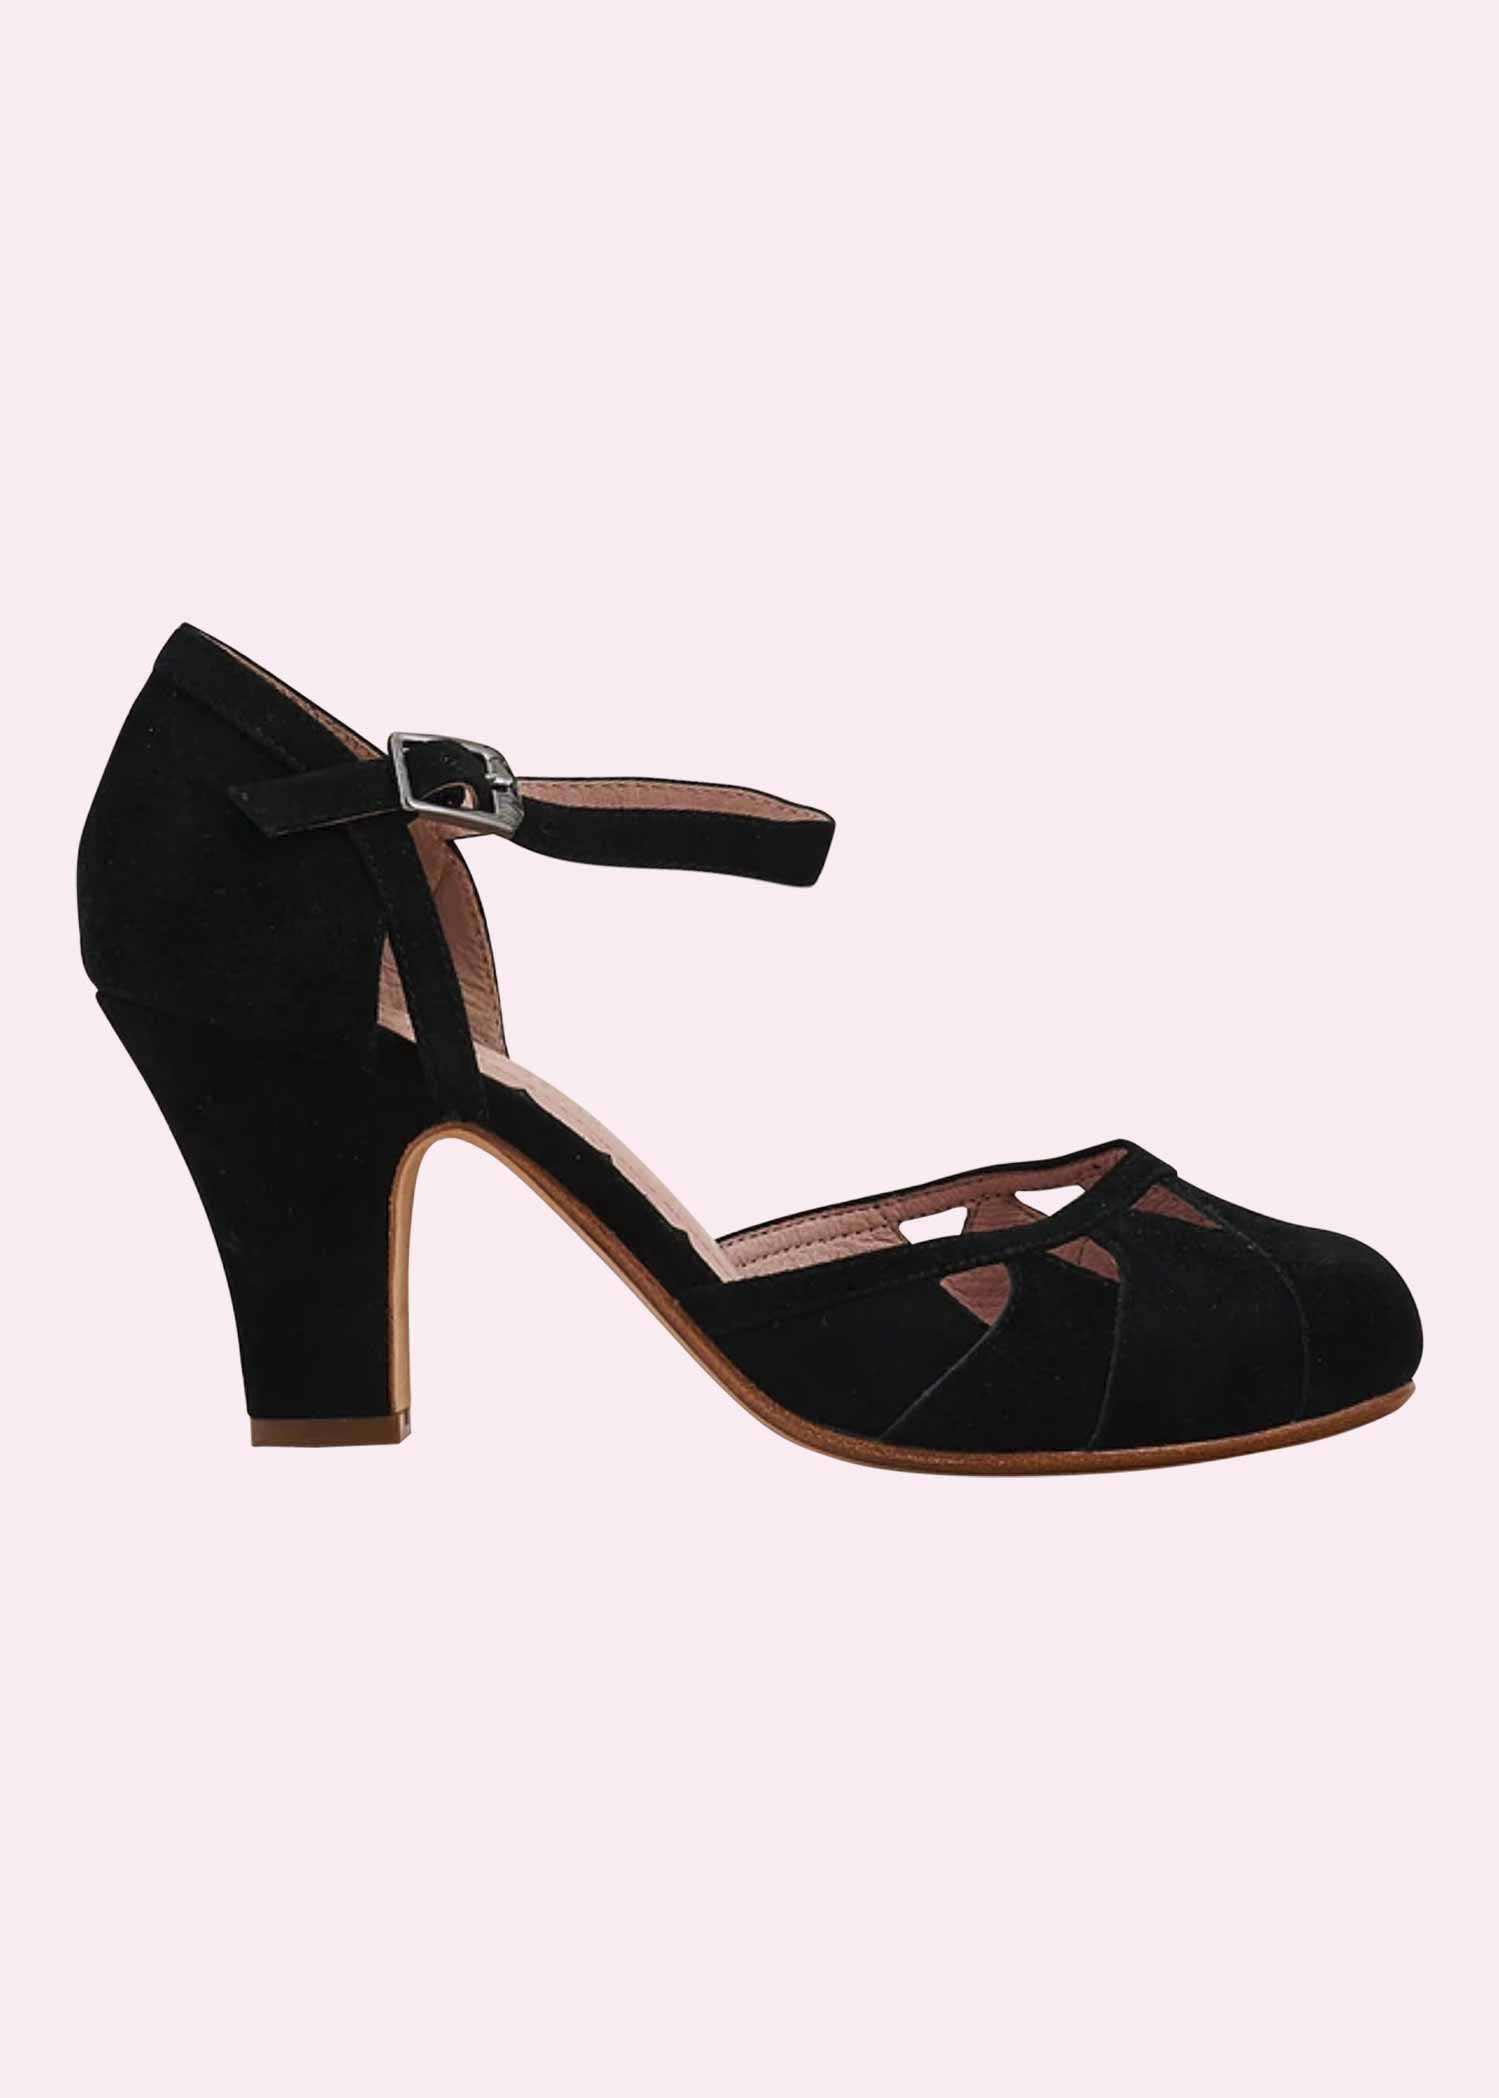 Lucie pumps in black suede from Miss L Fire